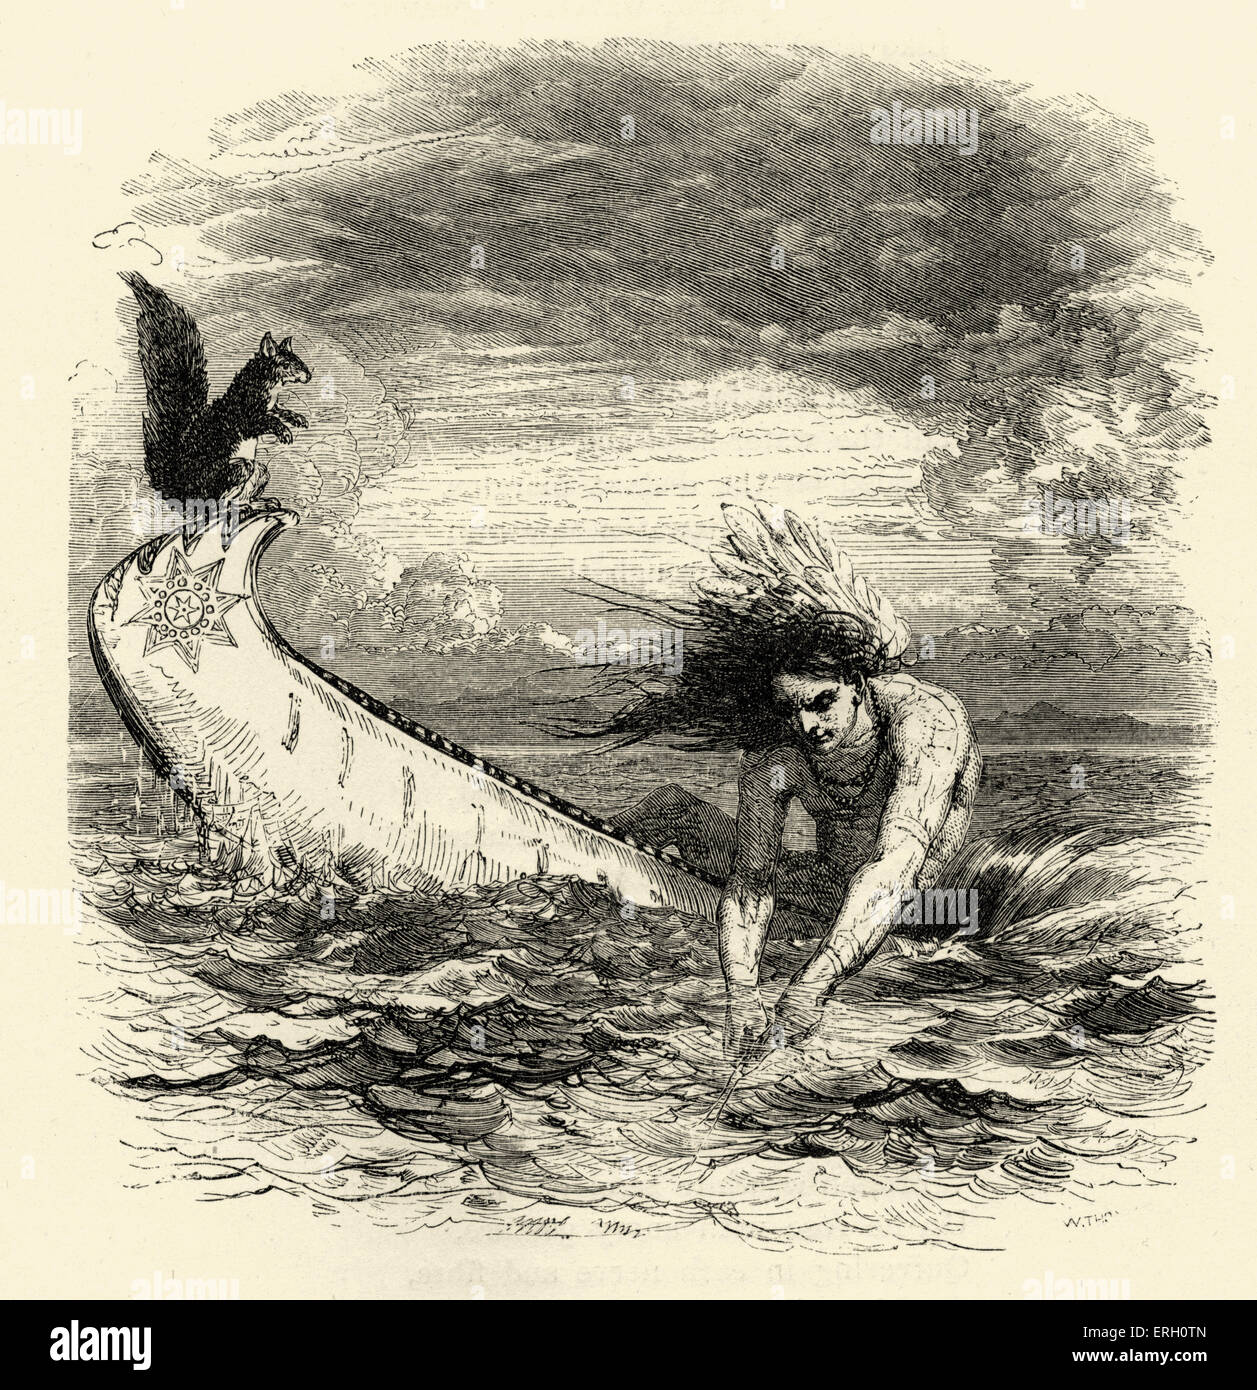 song of hiawatha by henry wadsworth longfellow hiawatha fishing song of hiawatha by henry wadsworth longfellow hiawatha fishing henry wadsworth american lyric poet 27 1807 24